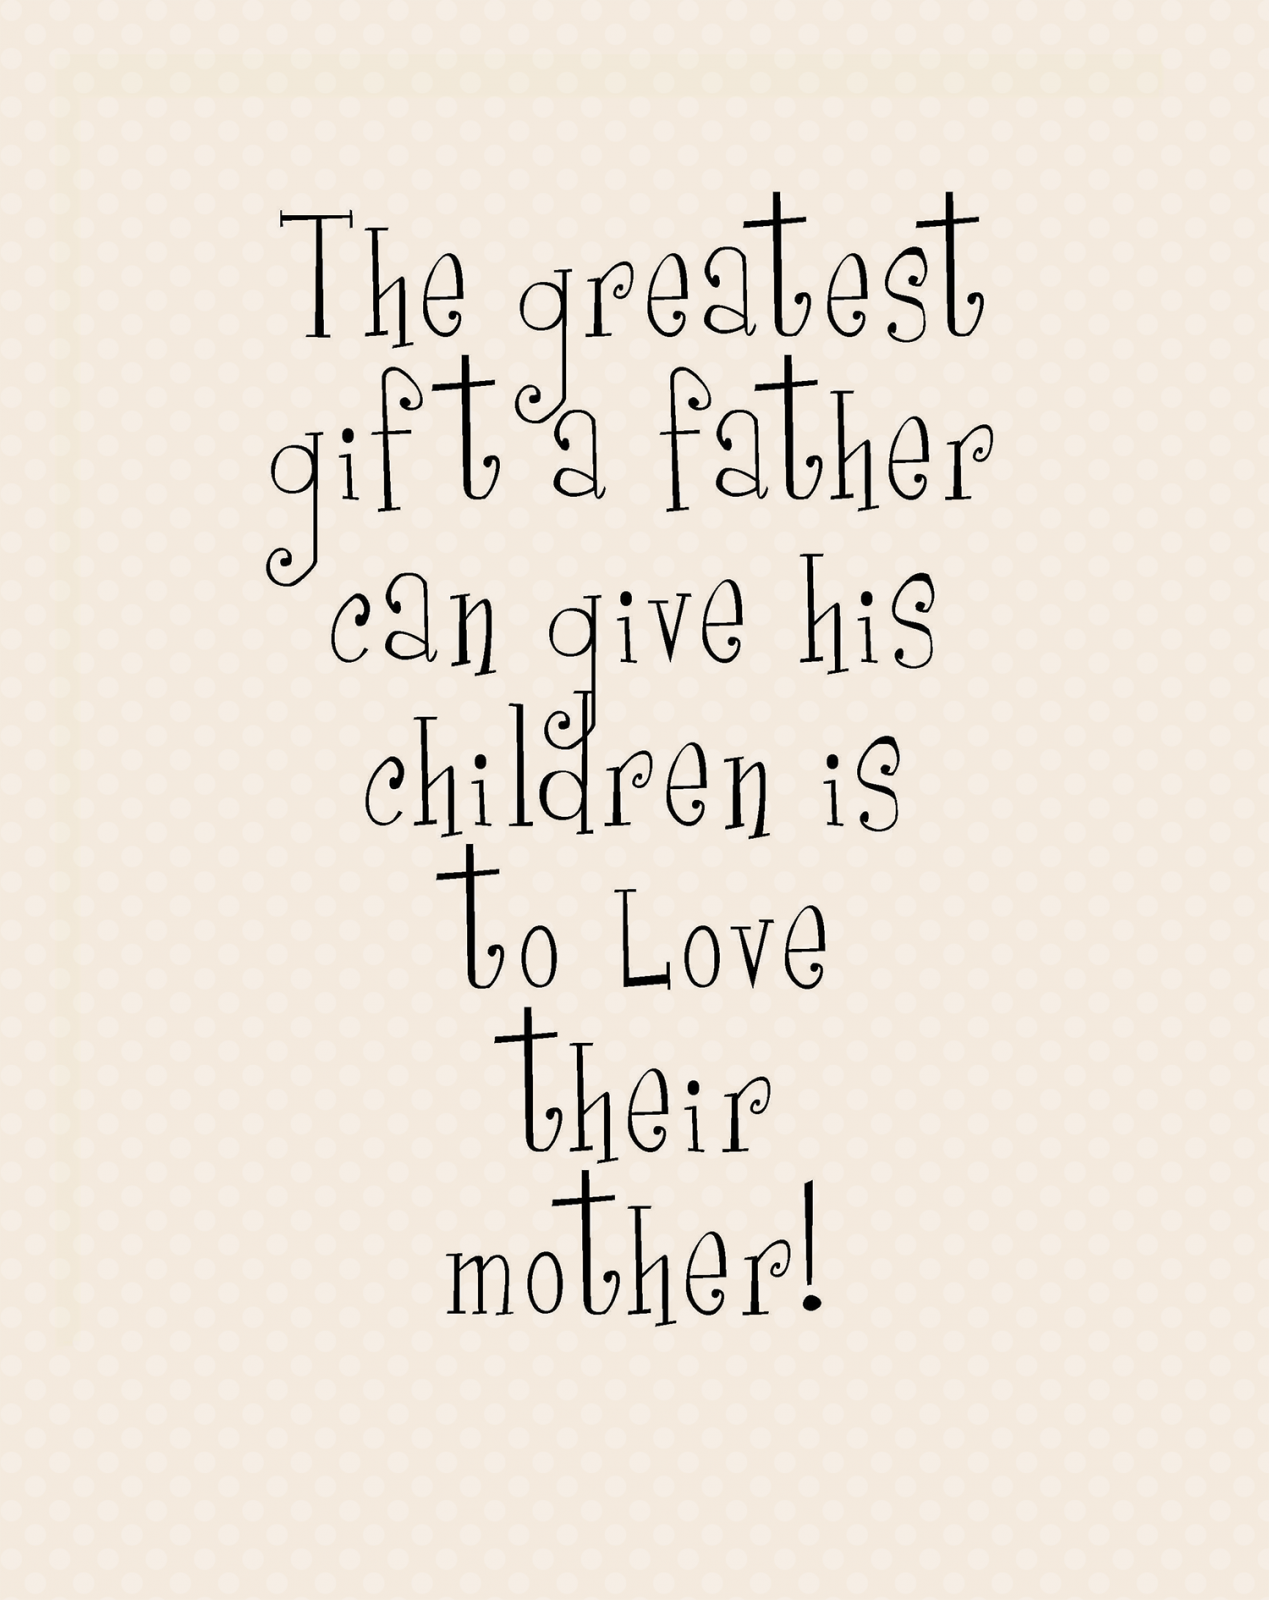 P-11: The greatest gift...